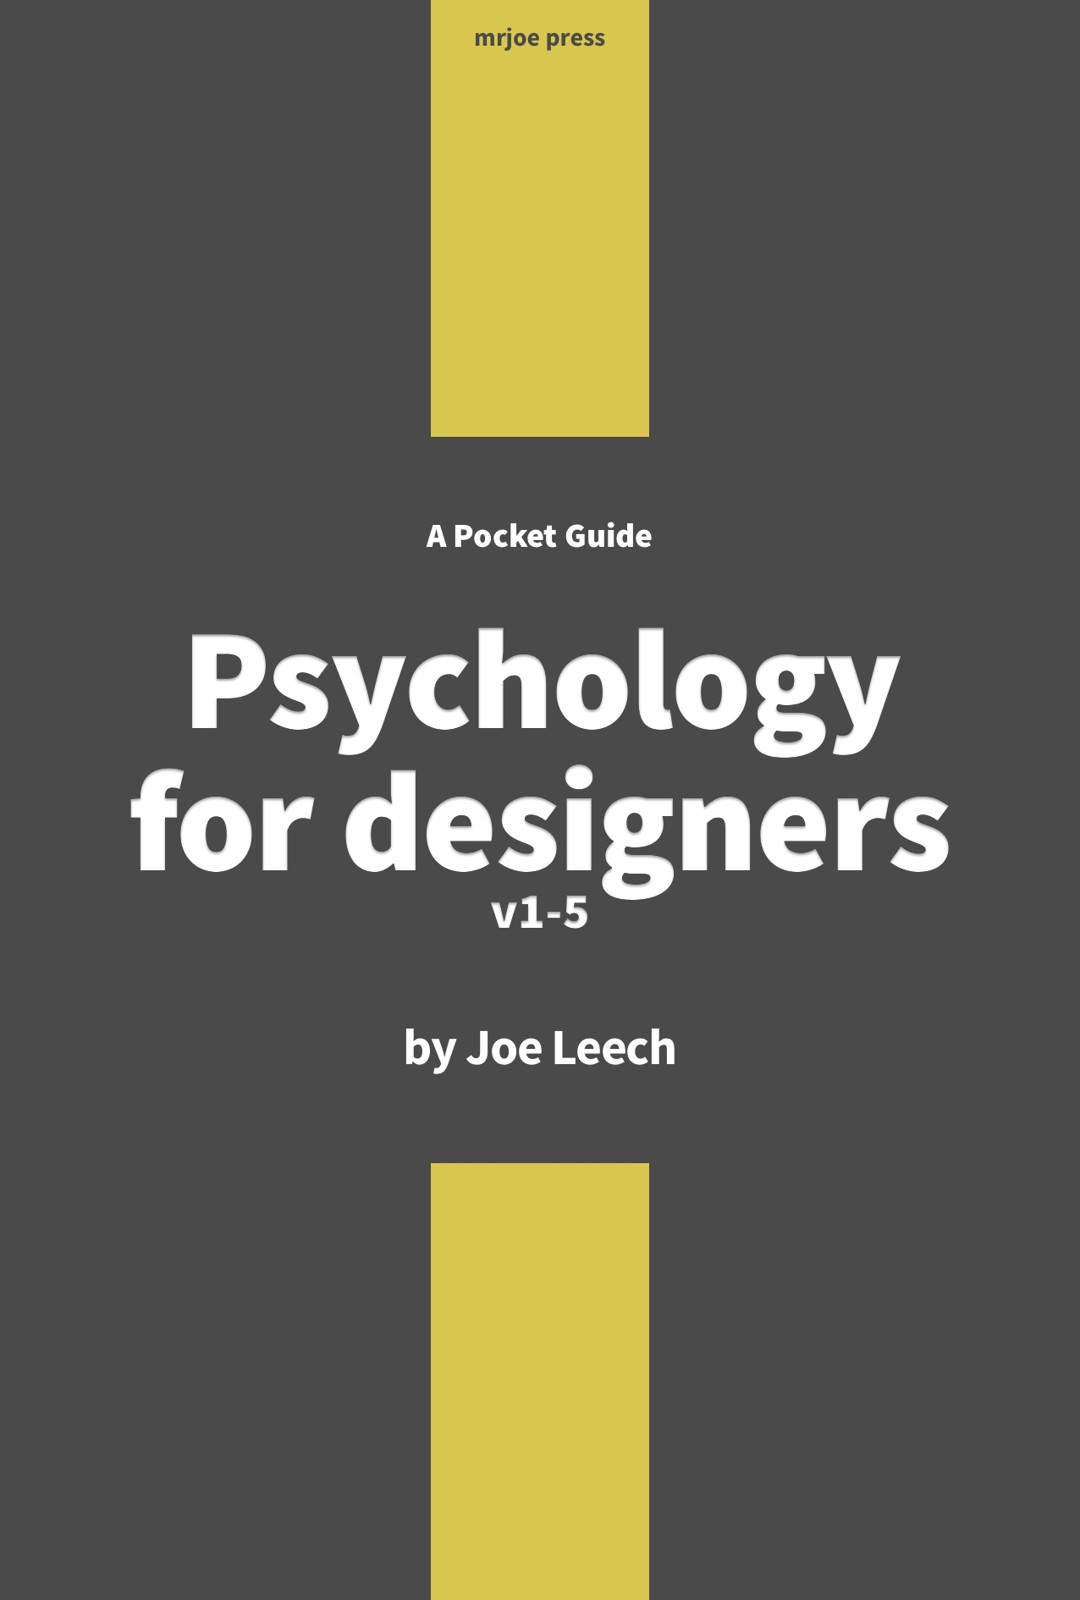 Psychology for Designers the ebook